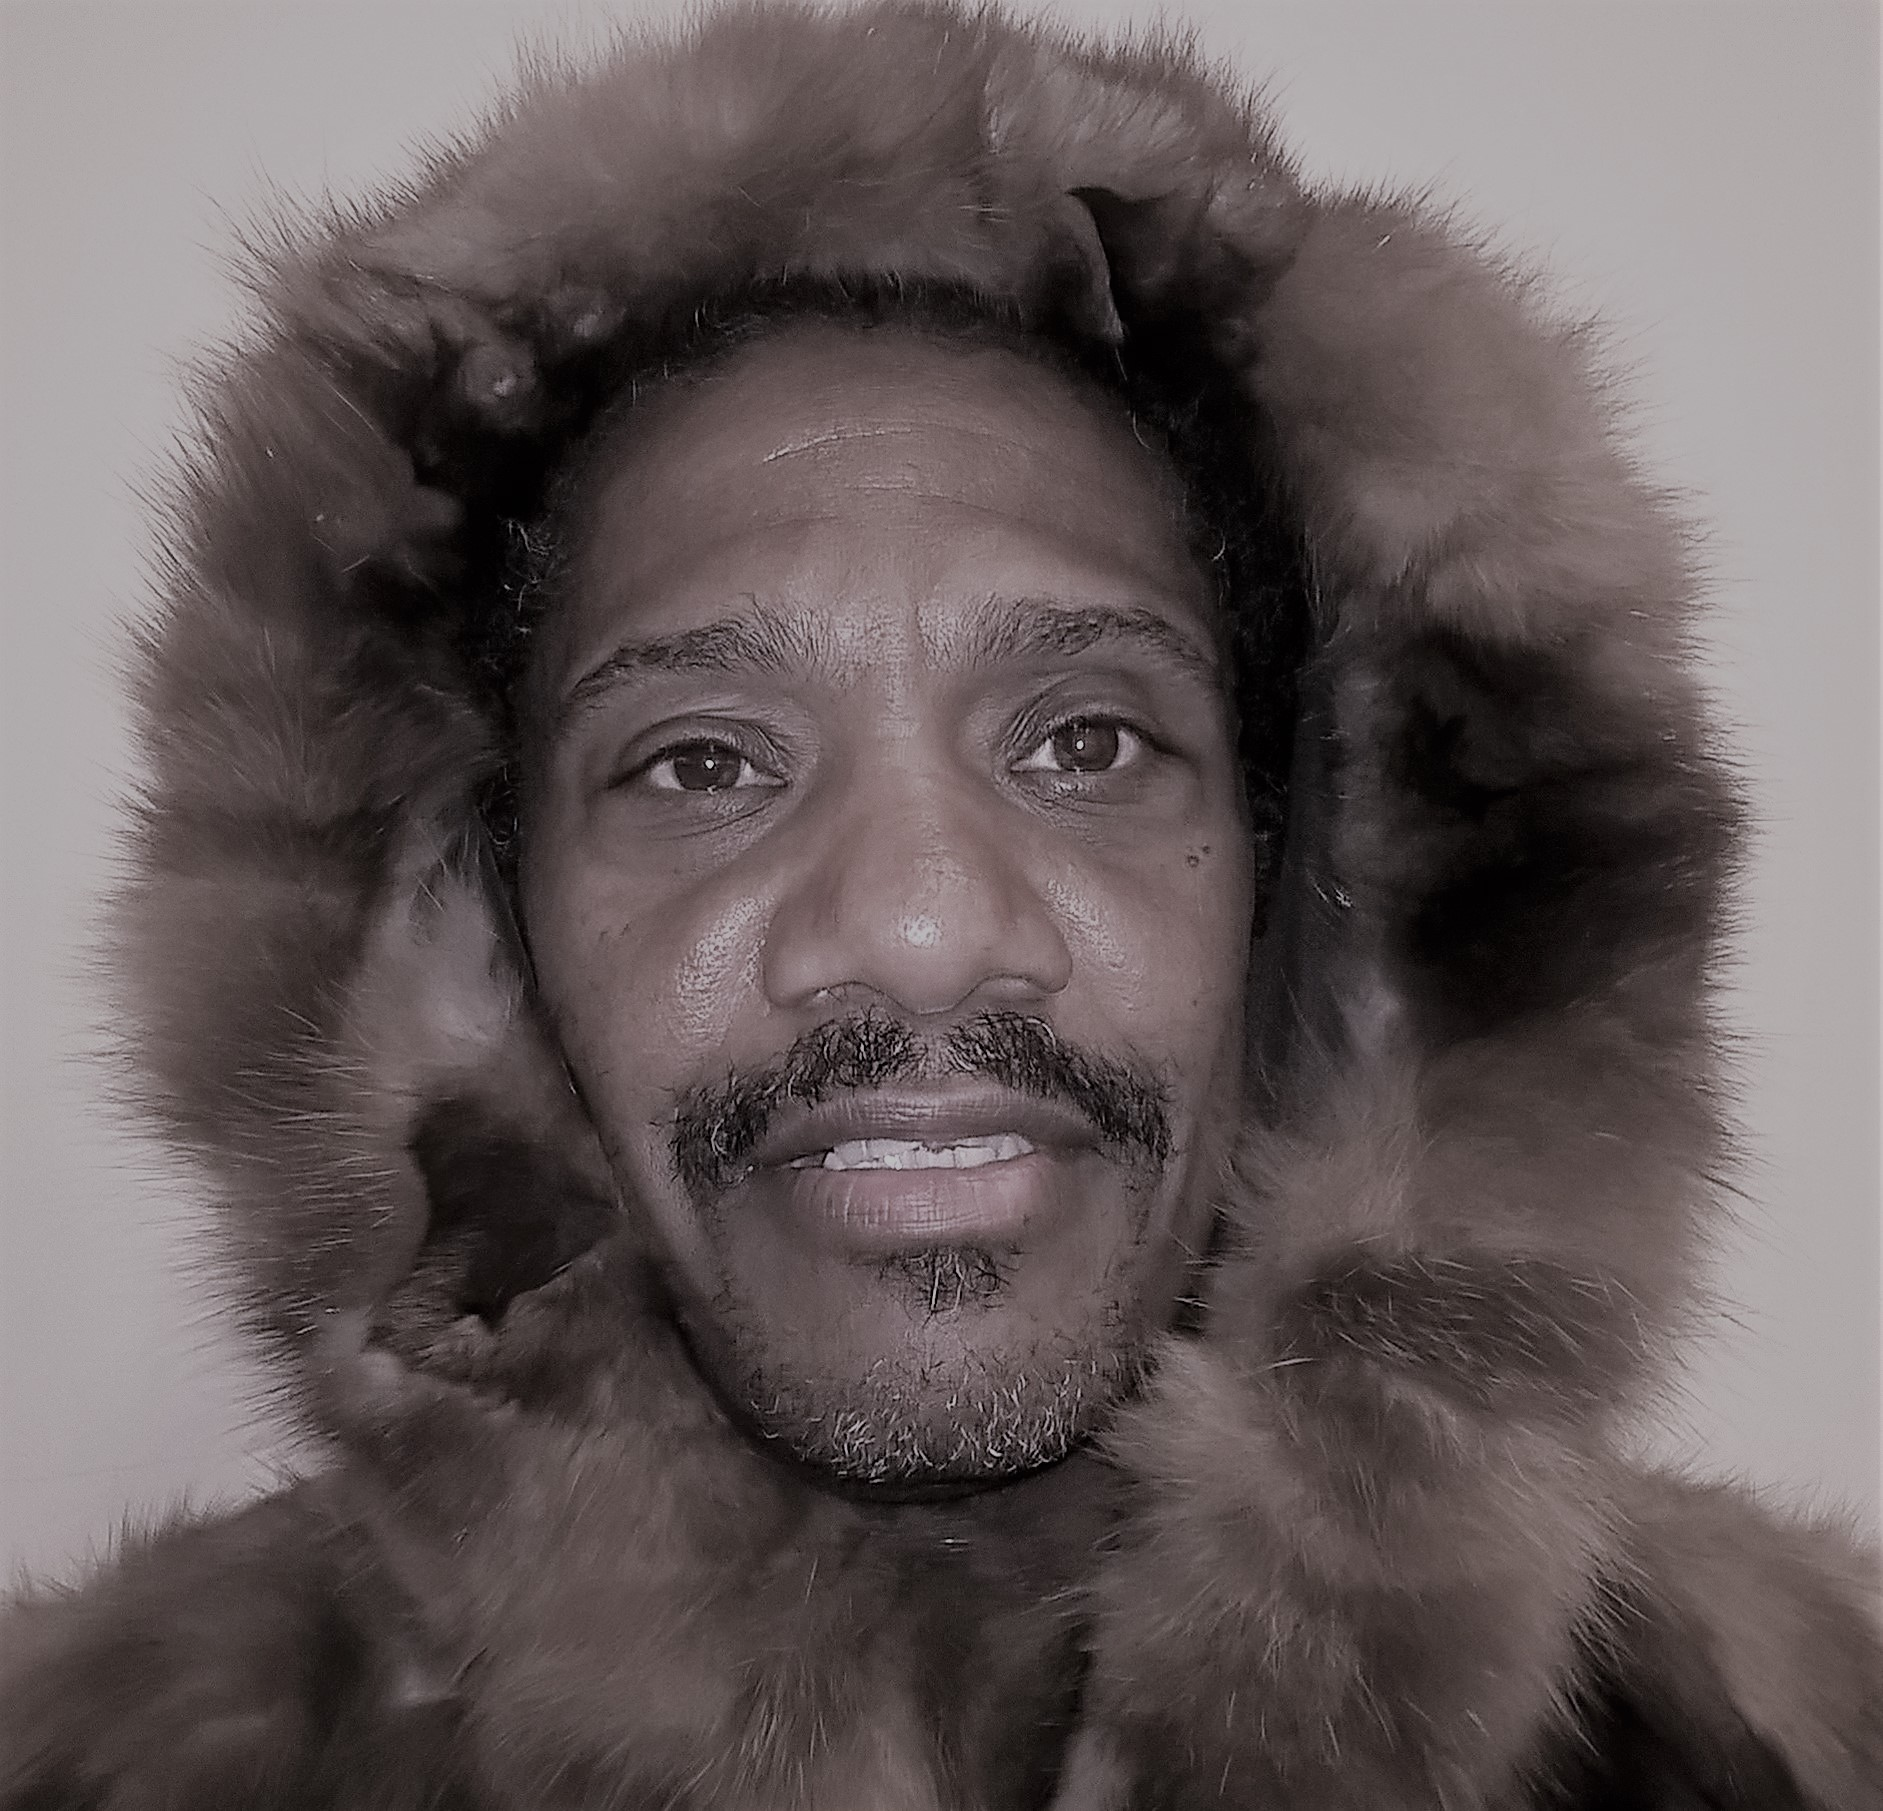 """Matthew Henson PORTRAYED BY KEITH HENLEY - Receiving many honors posthumously, Matthew Henson was much overlooked throughout his entire career as an explorer. Though he traveled throughout the northern hemisphere and is acknowledged the first man to reach the North Pole, his accomplishments were overshadowed by his colleague, Commander Robert Perry.Henson faced and overcame many of the limitations and struggles inherent for African Americans at the time. Orphaned at a young age, Henson worked hard to earn his way from being employed as a dishwasher, to a position as a Cabin boy, and eventually, he became a skilled navigator, and explorer.Reflecting back he wrote two books about his experiences, """"A Negro Explorer at the North Pole"""" and """"Dark Companion"""". The story of Matthew Henson's fascinating life encourages one to believe in oneself despite the odds, and to rise above the limited expectations of others to reach any goal.Keith Henley Bioof Actor/Historian or Interpreter"""